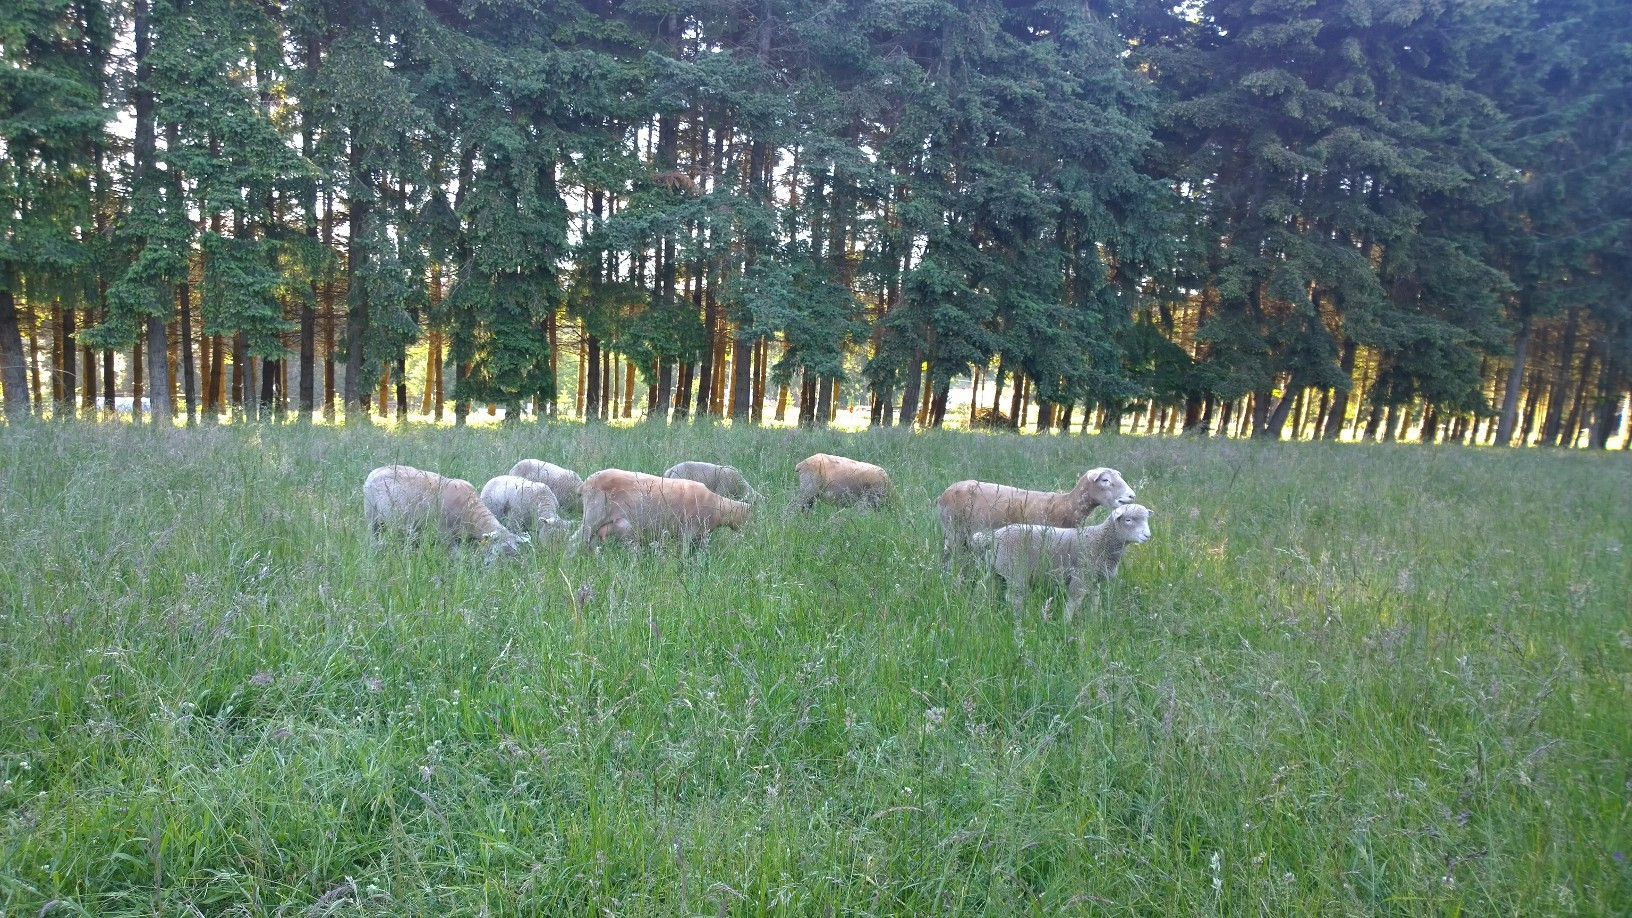 Dorset lambs grazing on the upper pasture.